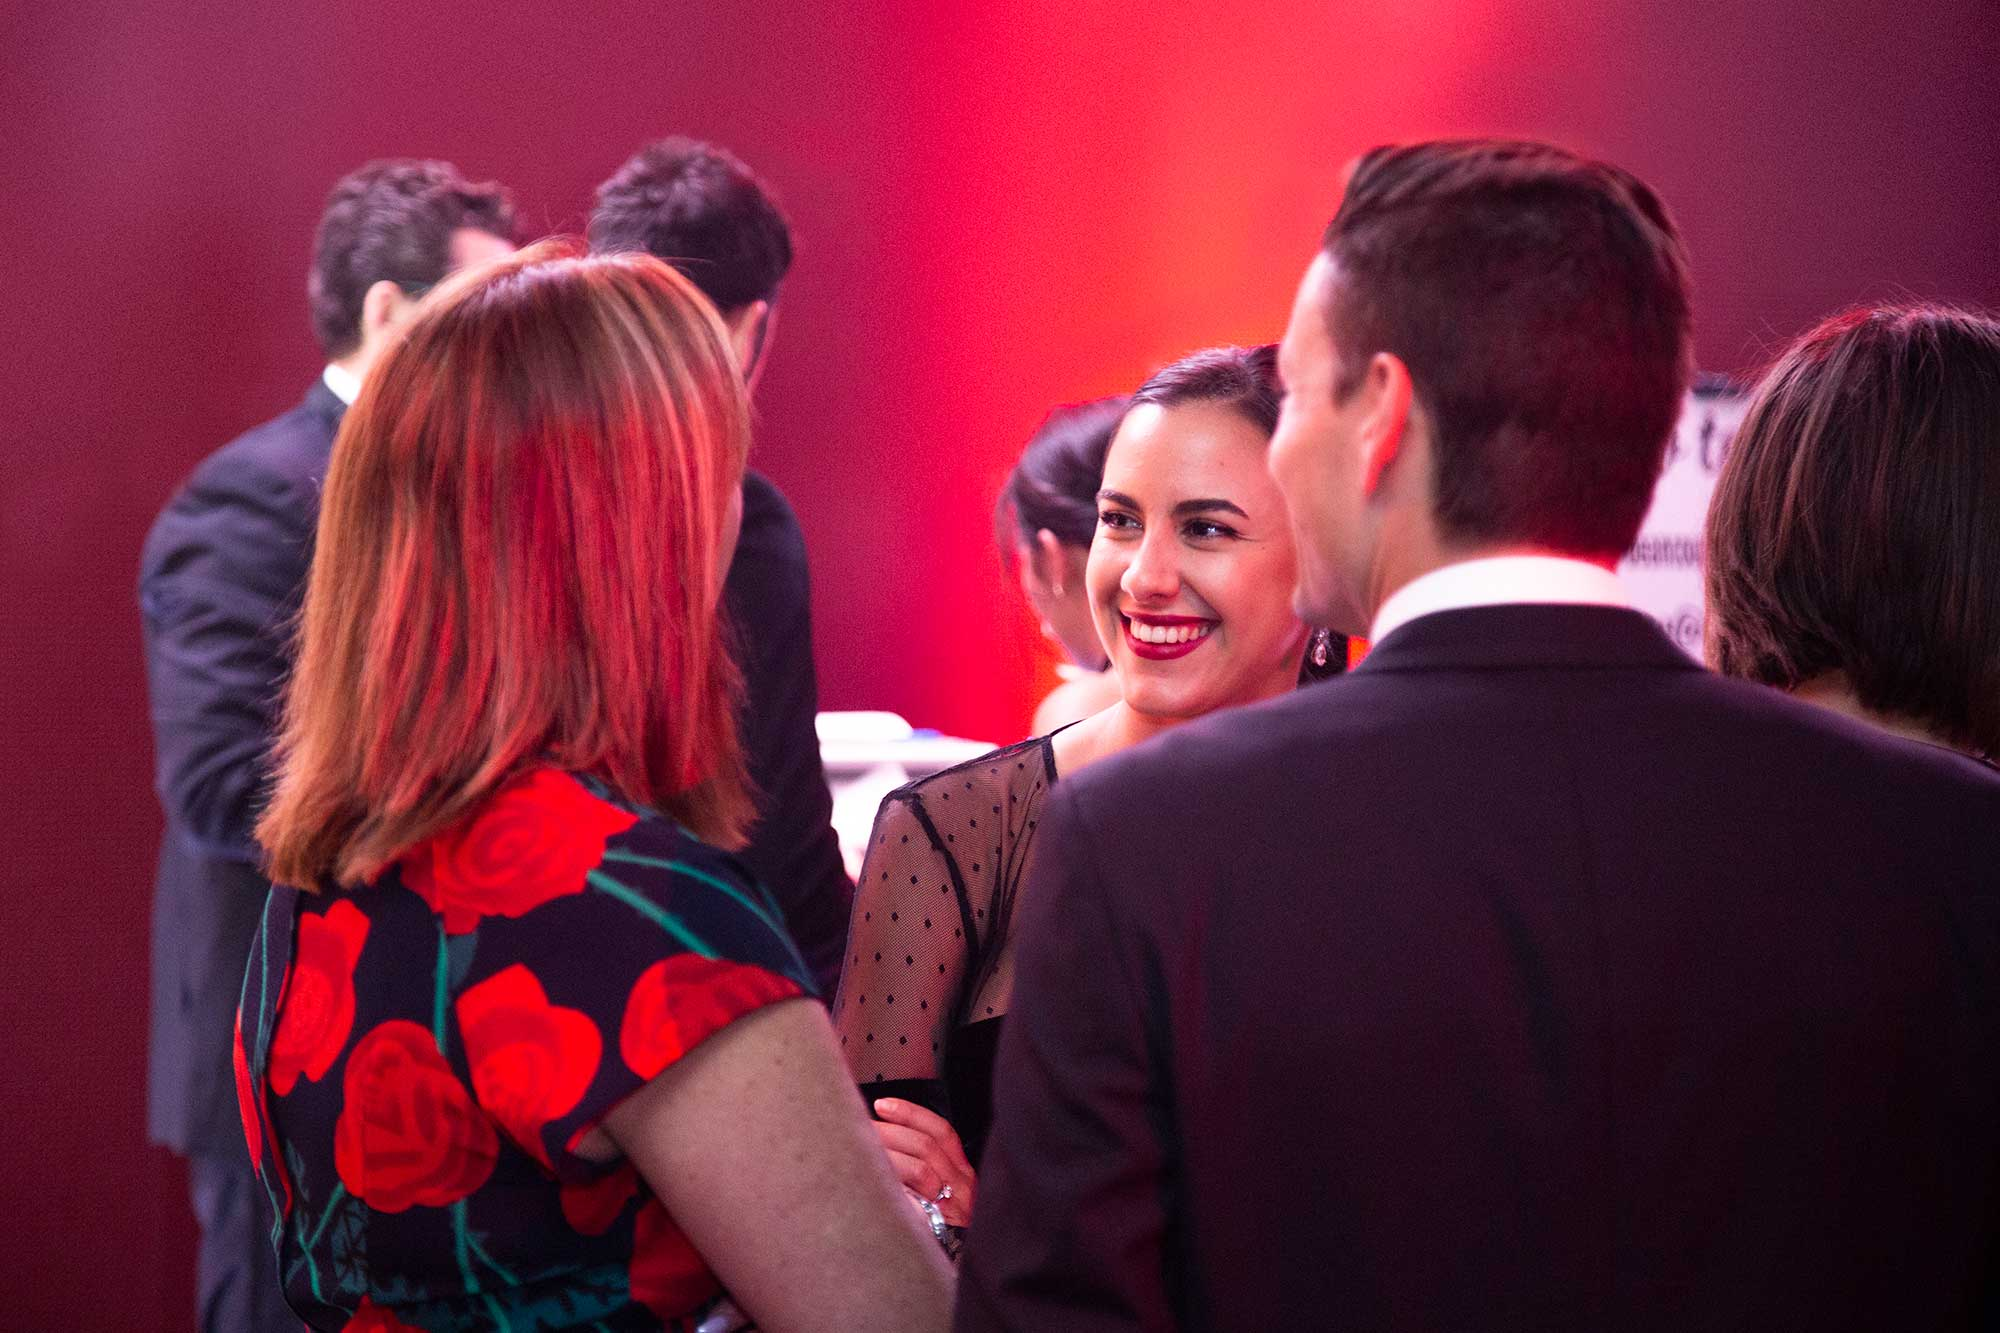 An action photograph of three people having a conversation at a Bean Counters Ball event.